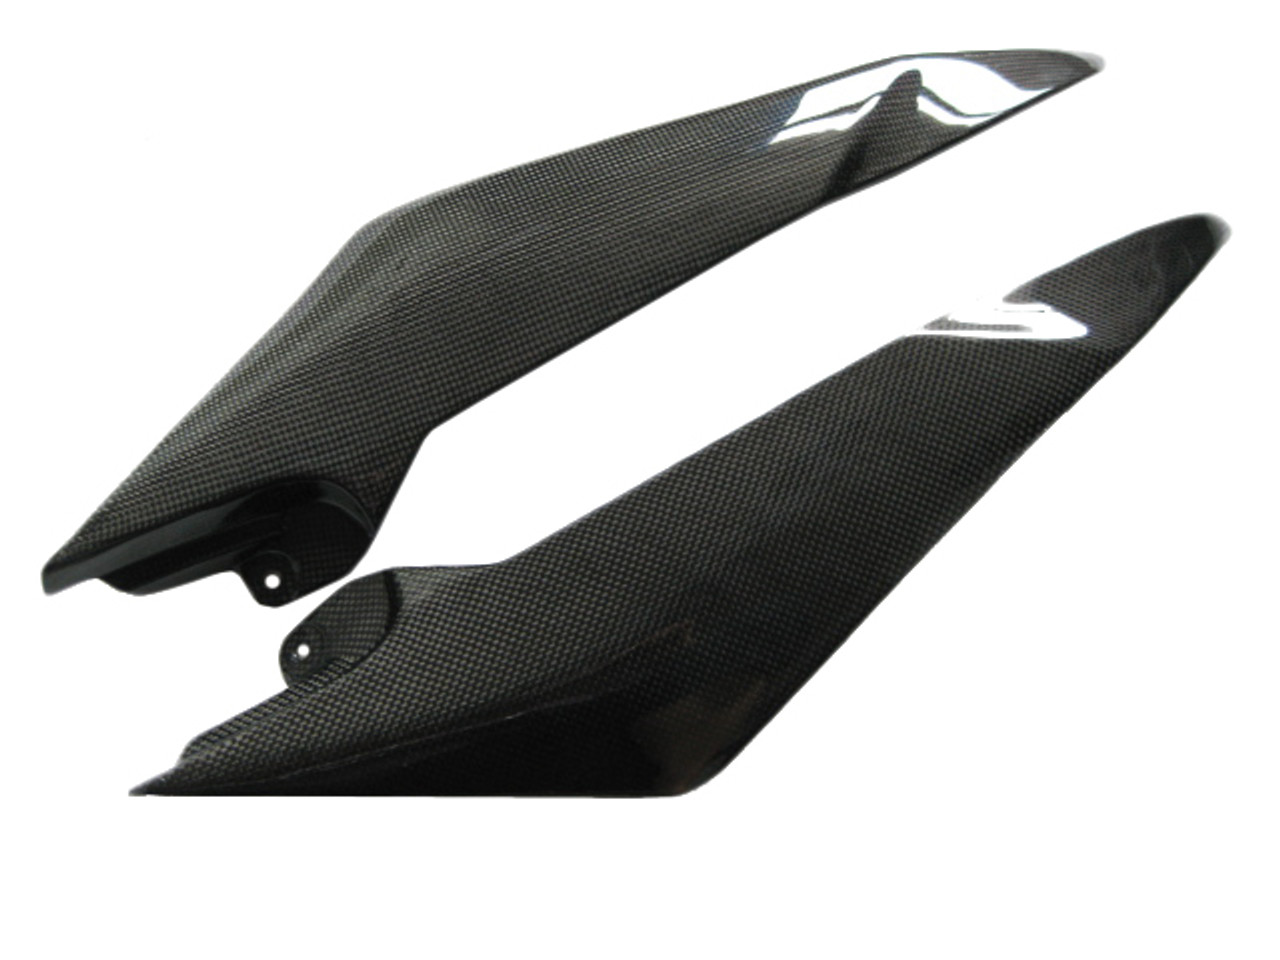 Glossy Plain Weave Carbon Fiber Side Cowl Covers for Yamaha R6 08-16